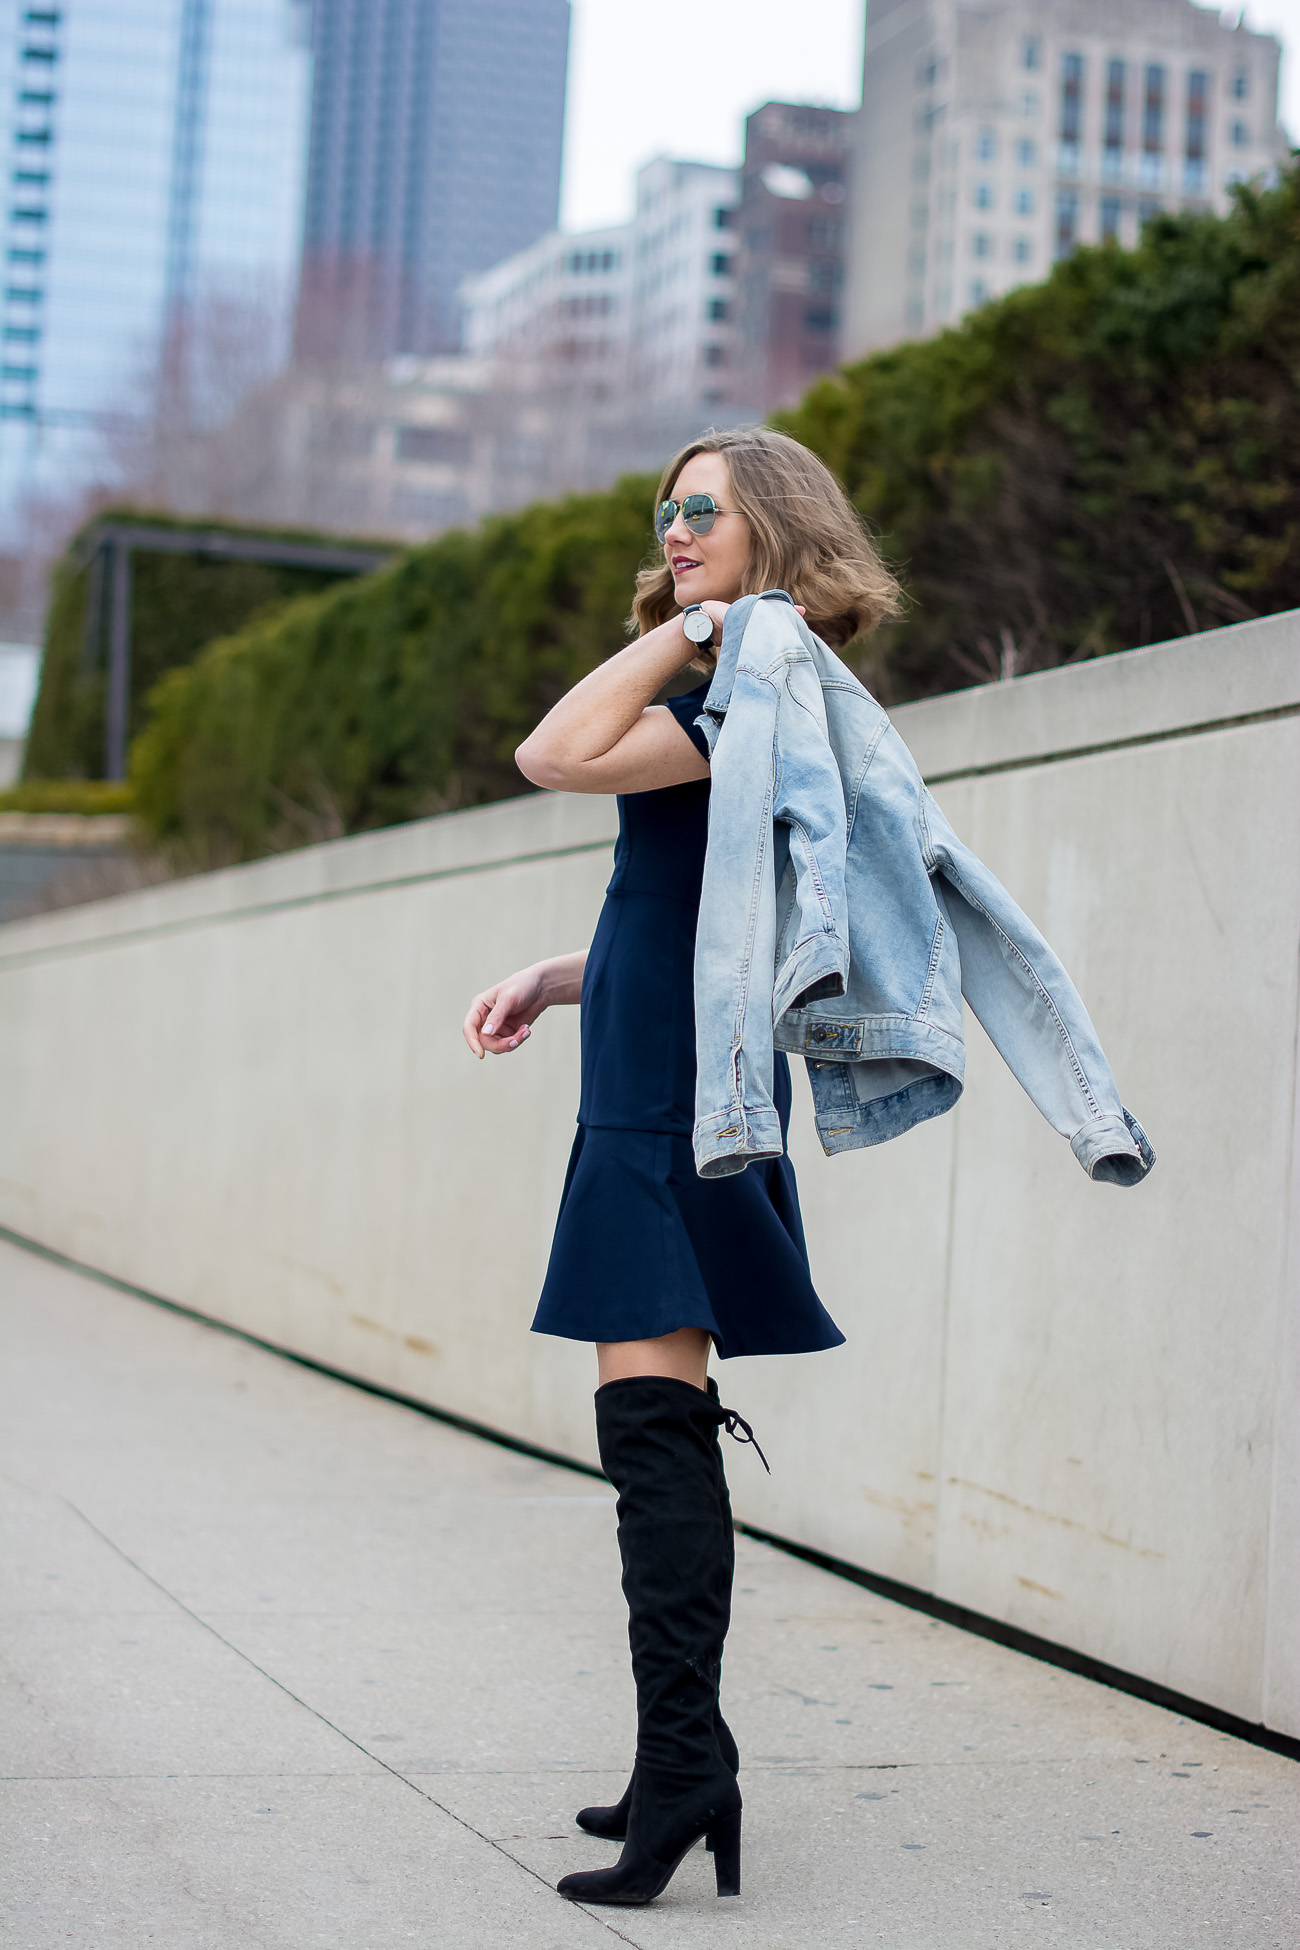 target-light-wash-denim-jacket-banana-republic-fit-and-flare-dress-steve-madden-over-the-knee-faux-suede-black-boots-vintage-rhinestone-brooches-mirrored-aviators-vintage-meets-modern-outfit